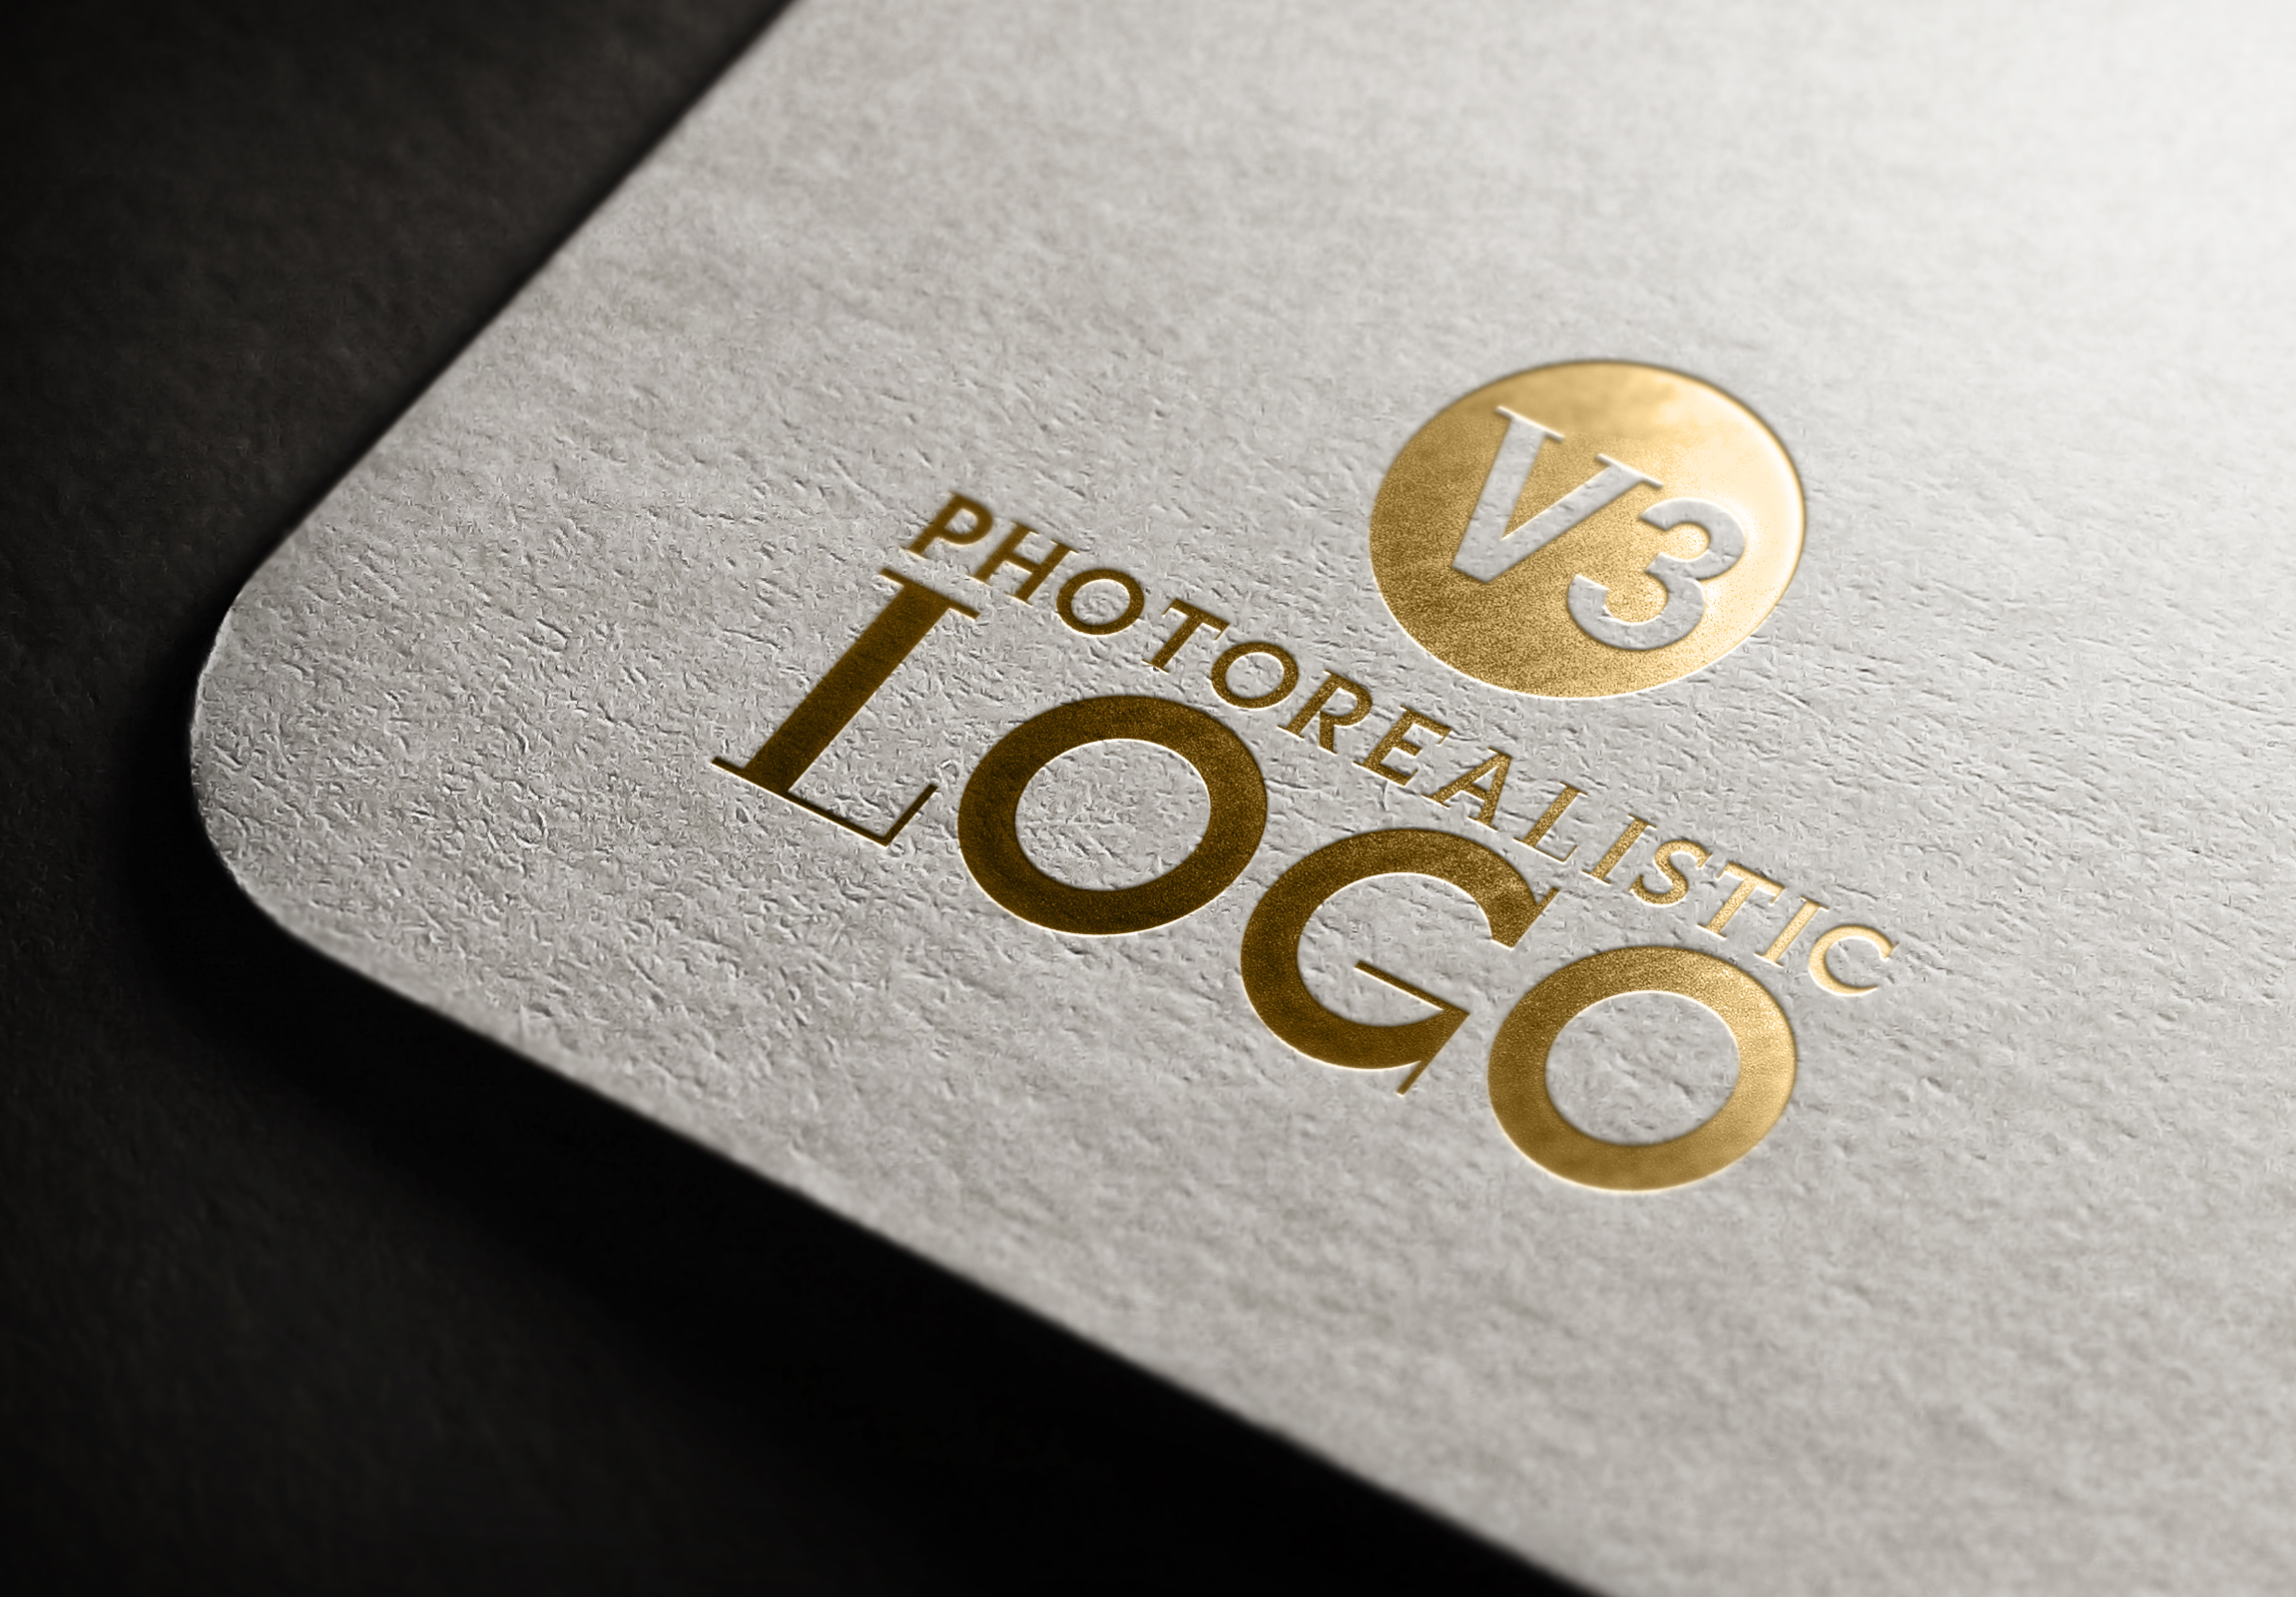 I will Professional creative business logo Design